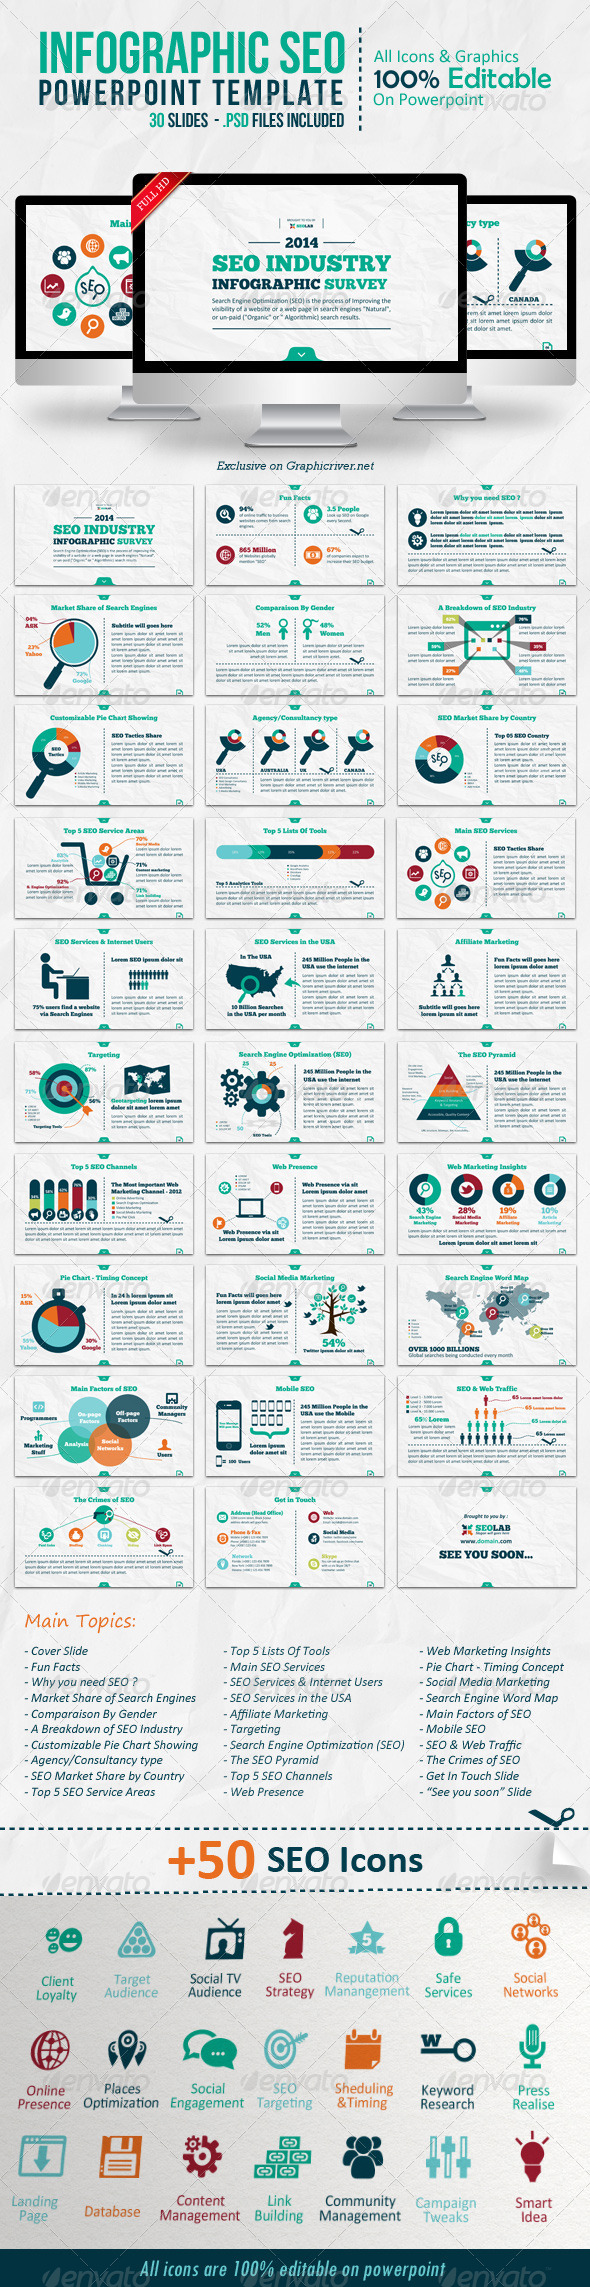 GraphicRiver Infographic SEO Powerpoint Template 6709947